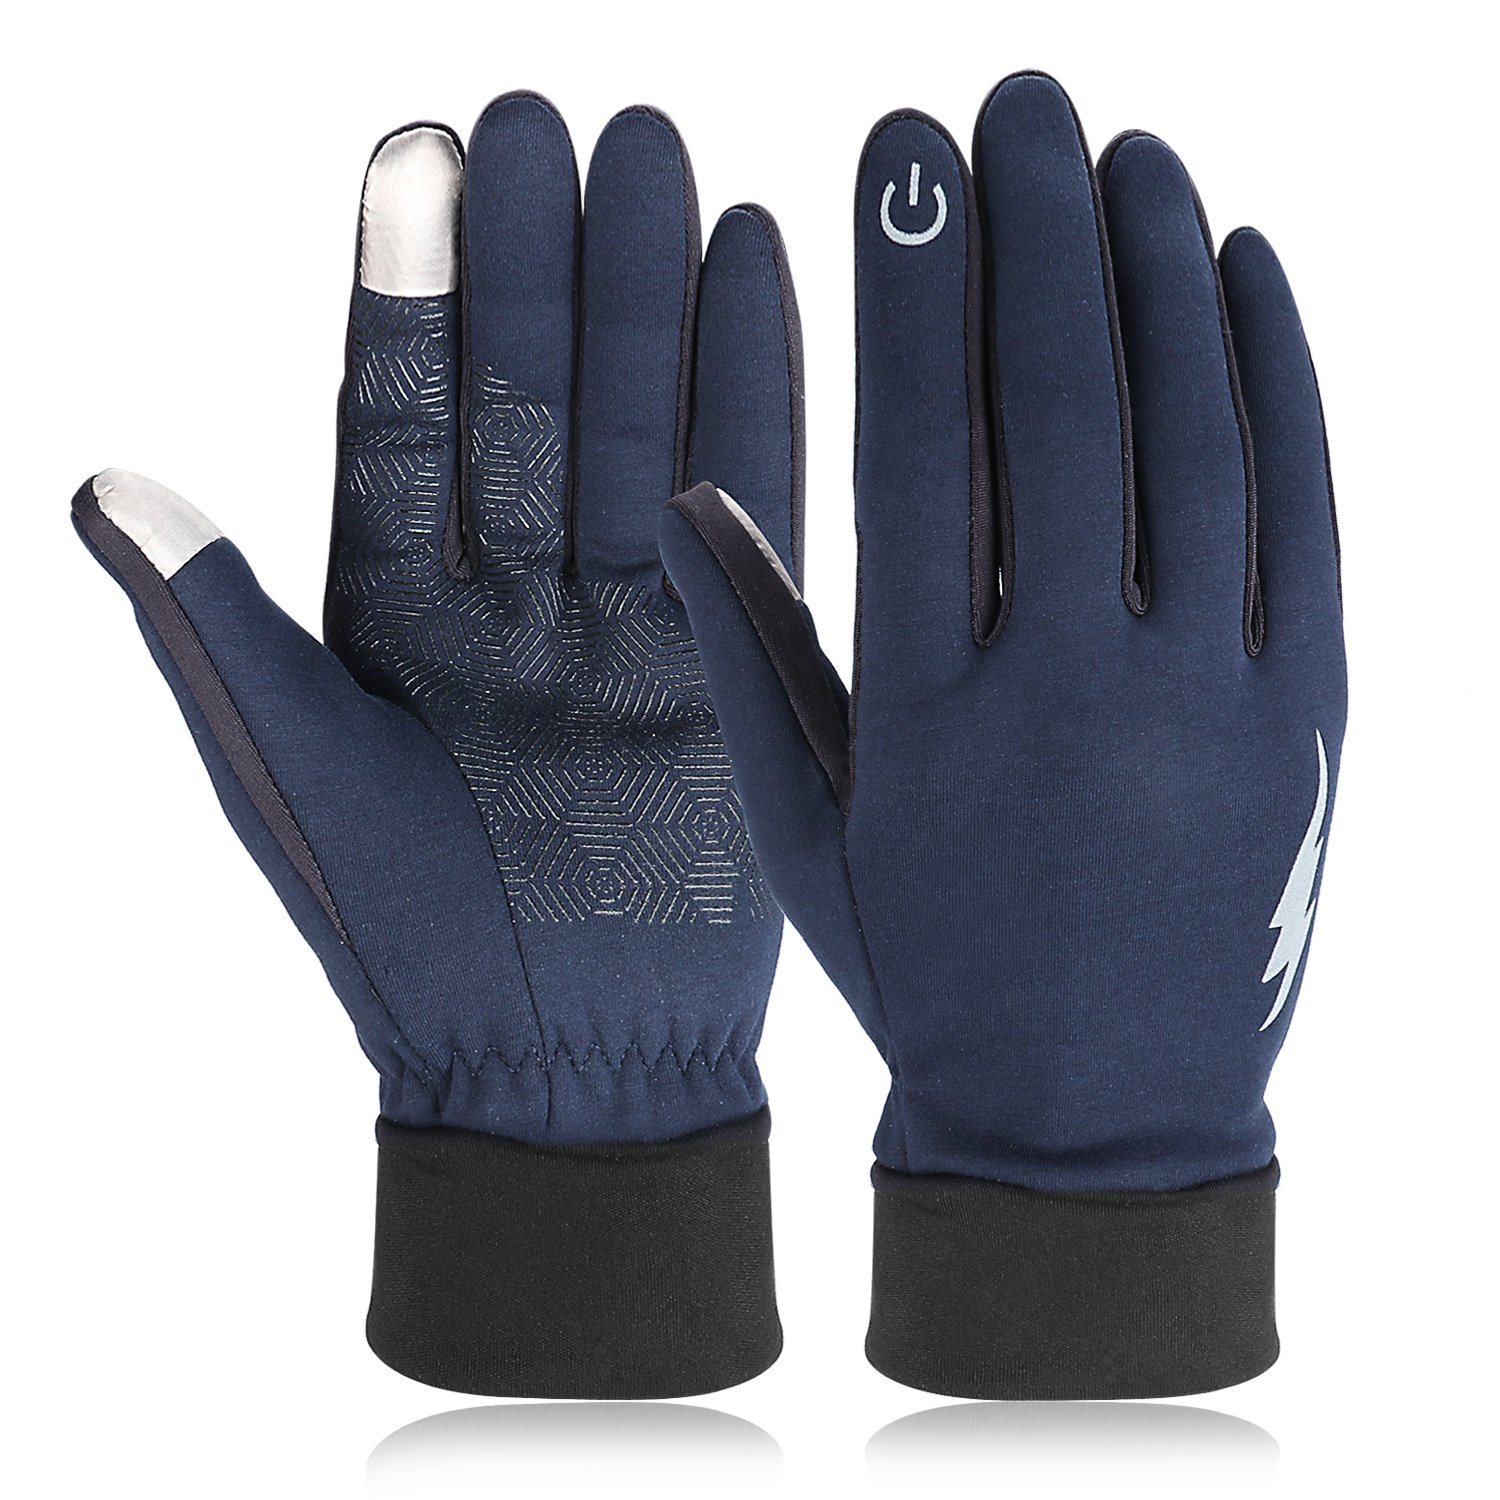 Winter Gloves, HiCool Touch Screen Gloves Driving Gloves Running Cycling Gloves Outdoor Indoor Thermal Warm Gloves for Men and Women (M, Dark Blue)